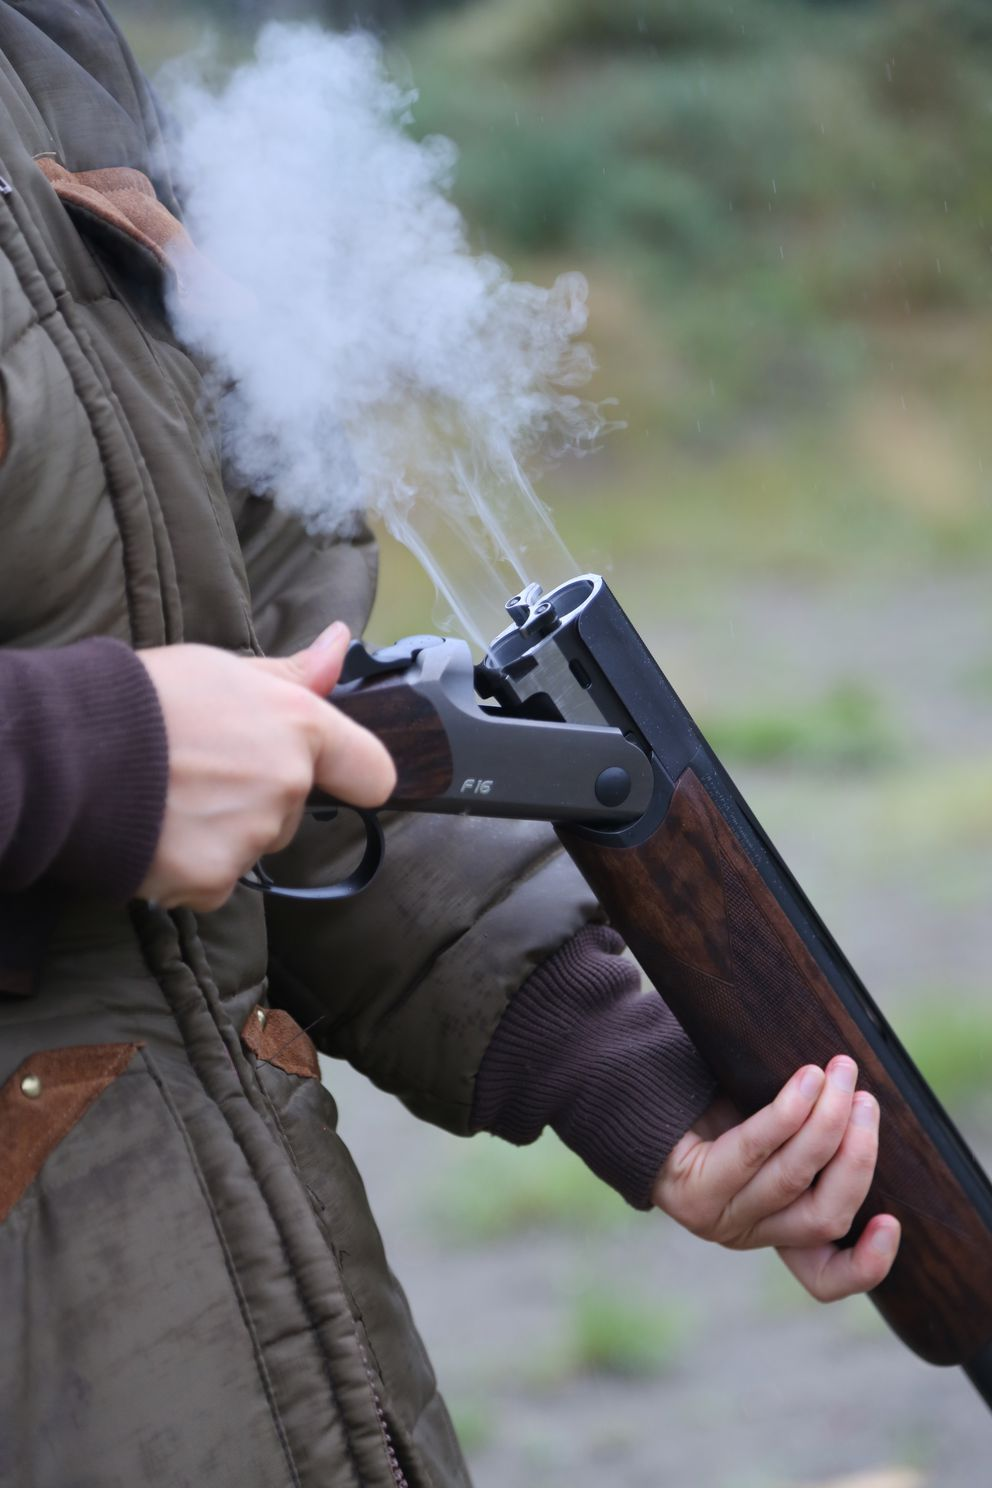 The classic 'aromatherapy ' shot from a 12-gauge Blaser, an over/under shotgun. (Photo by Steve Meyer)